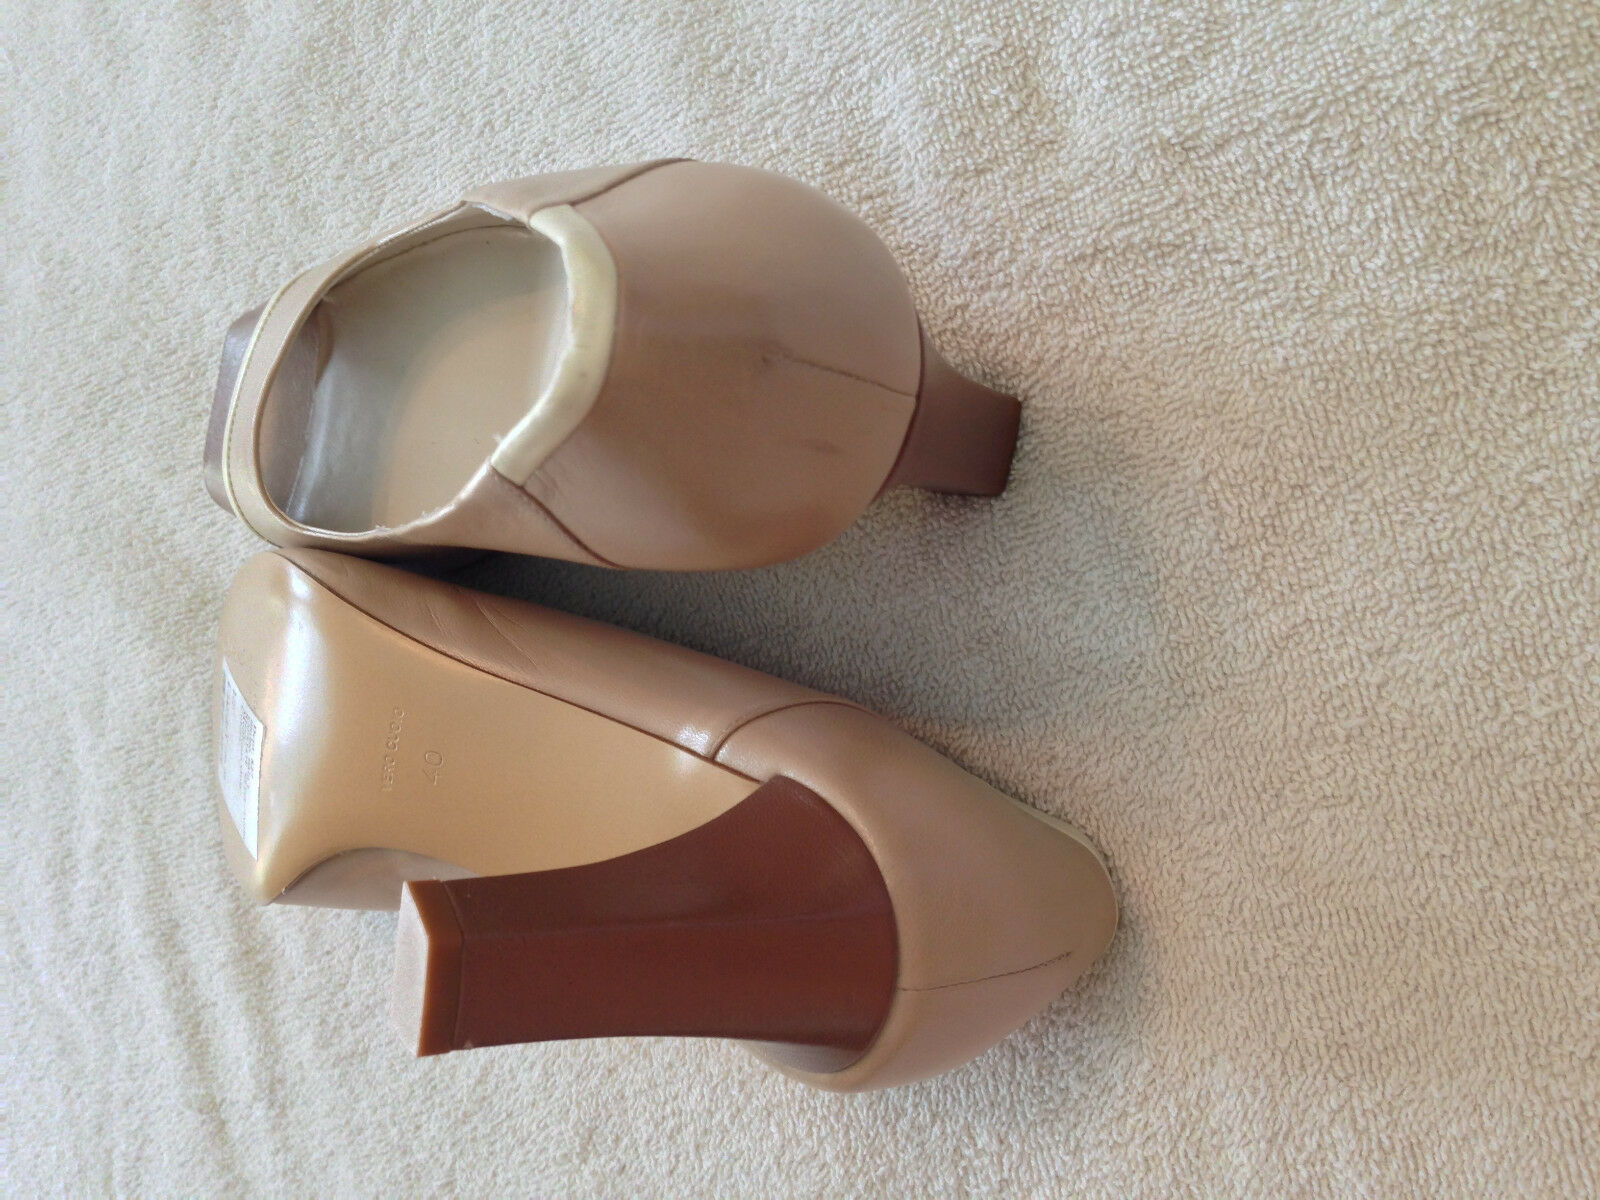 Bruno Magli Capriate Beige chaussures chaussures chaussures 10M (40) ac2ae5